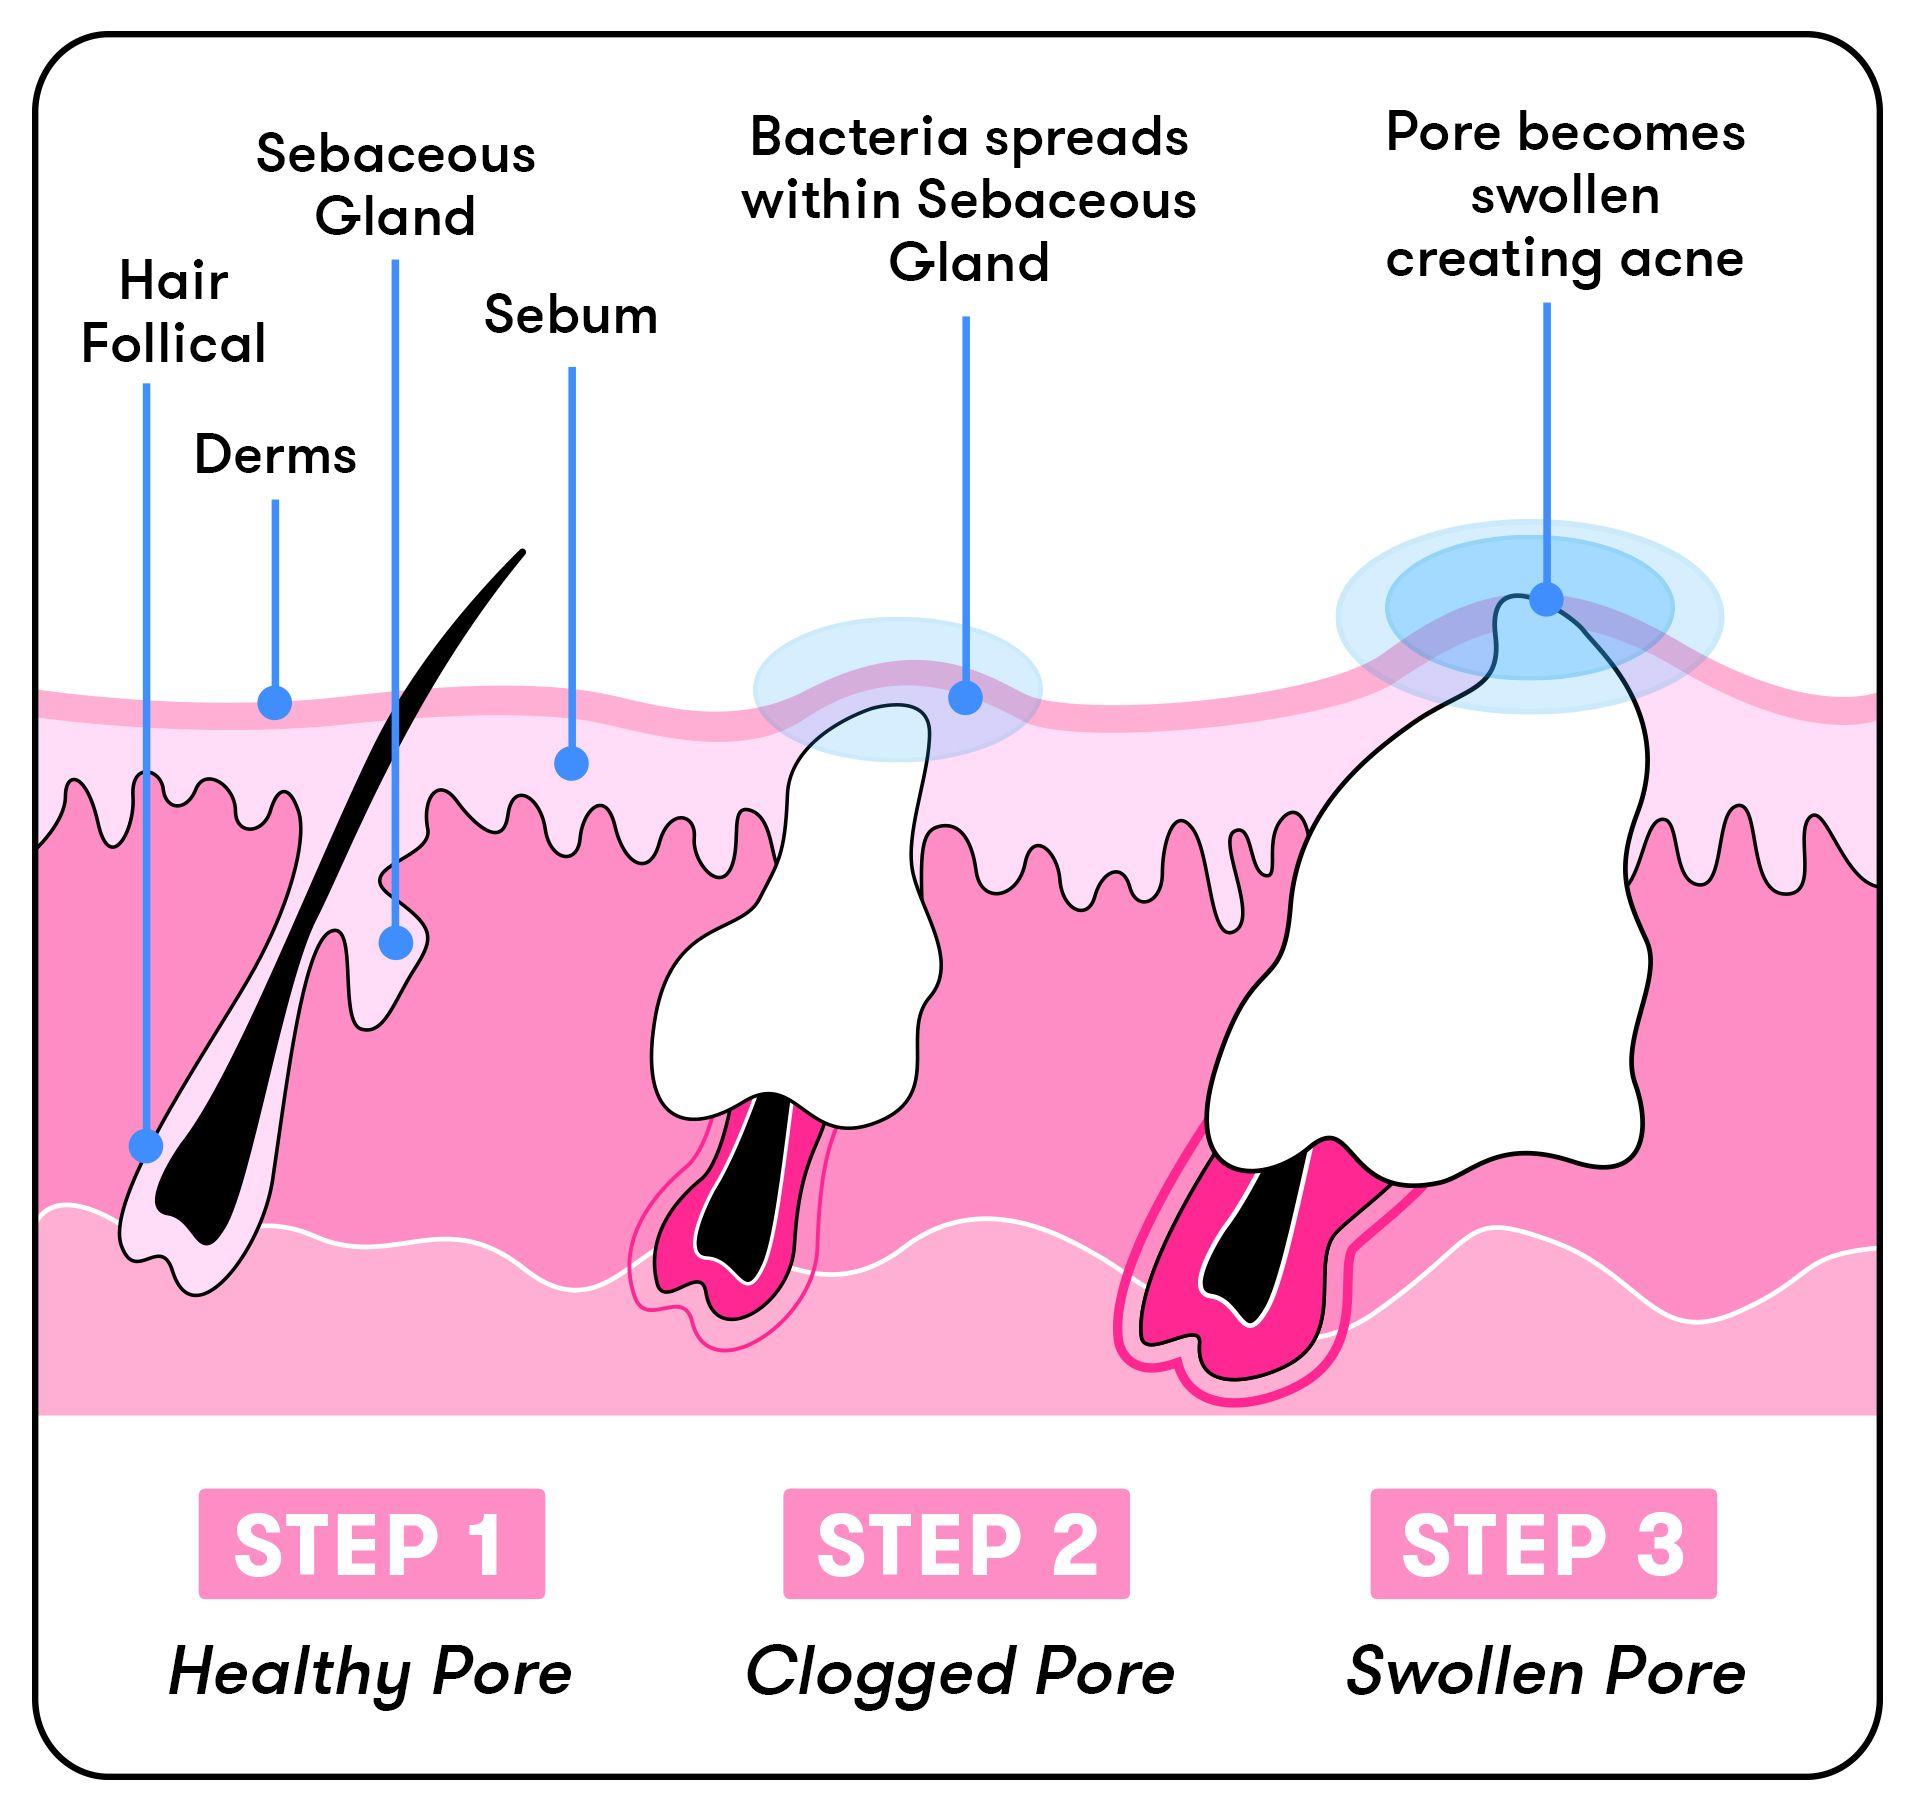 cystic acne 101 how to get rid of and treat cystic acne pimples large zits cystic zit diagram [ 1920 x 1809 Pixel ]